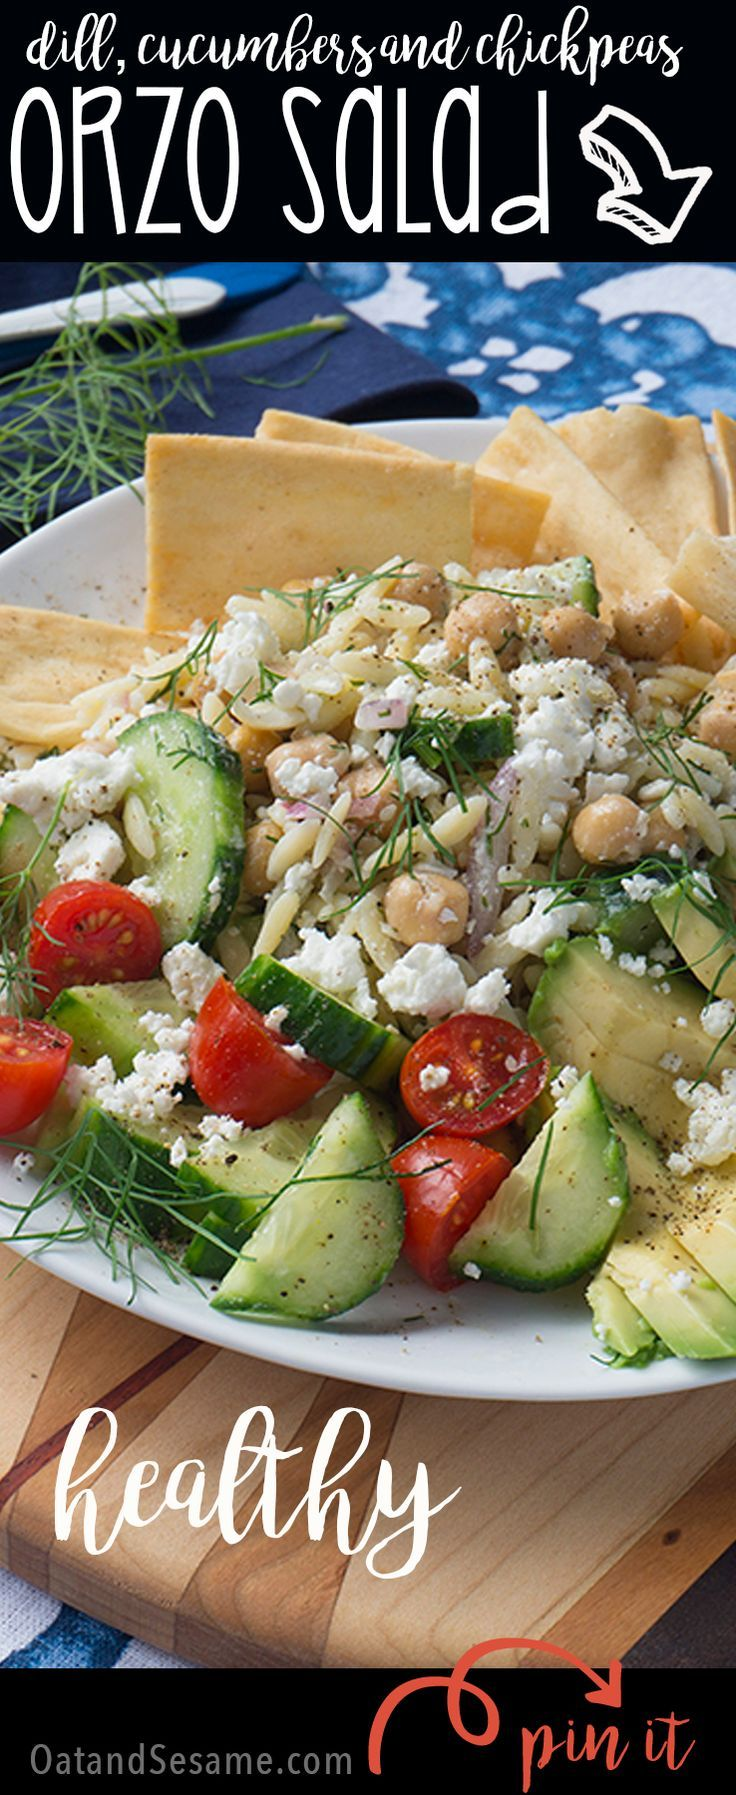 Fresh and Light Orzo Salad topped with Cucumbers, Chickpeas, and Dill - DIG INTO SUMMER! |  #VEGETARIAN | #ORZO | #SALAD | #Recipes at OatandSesame.com